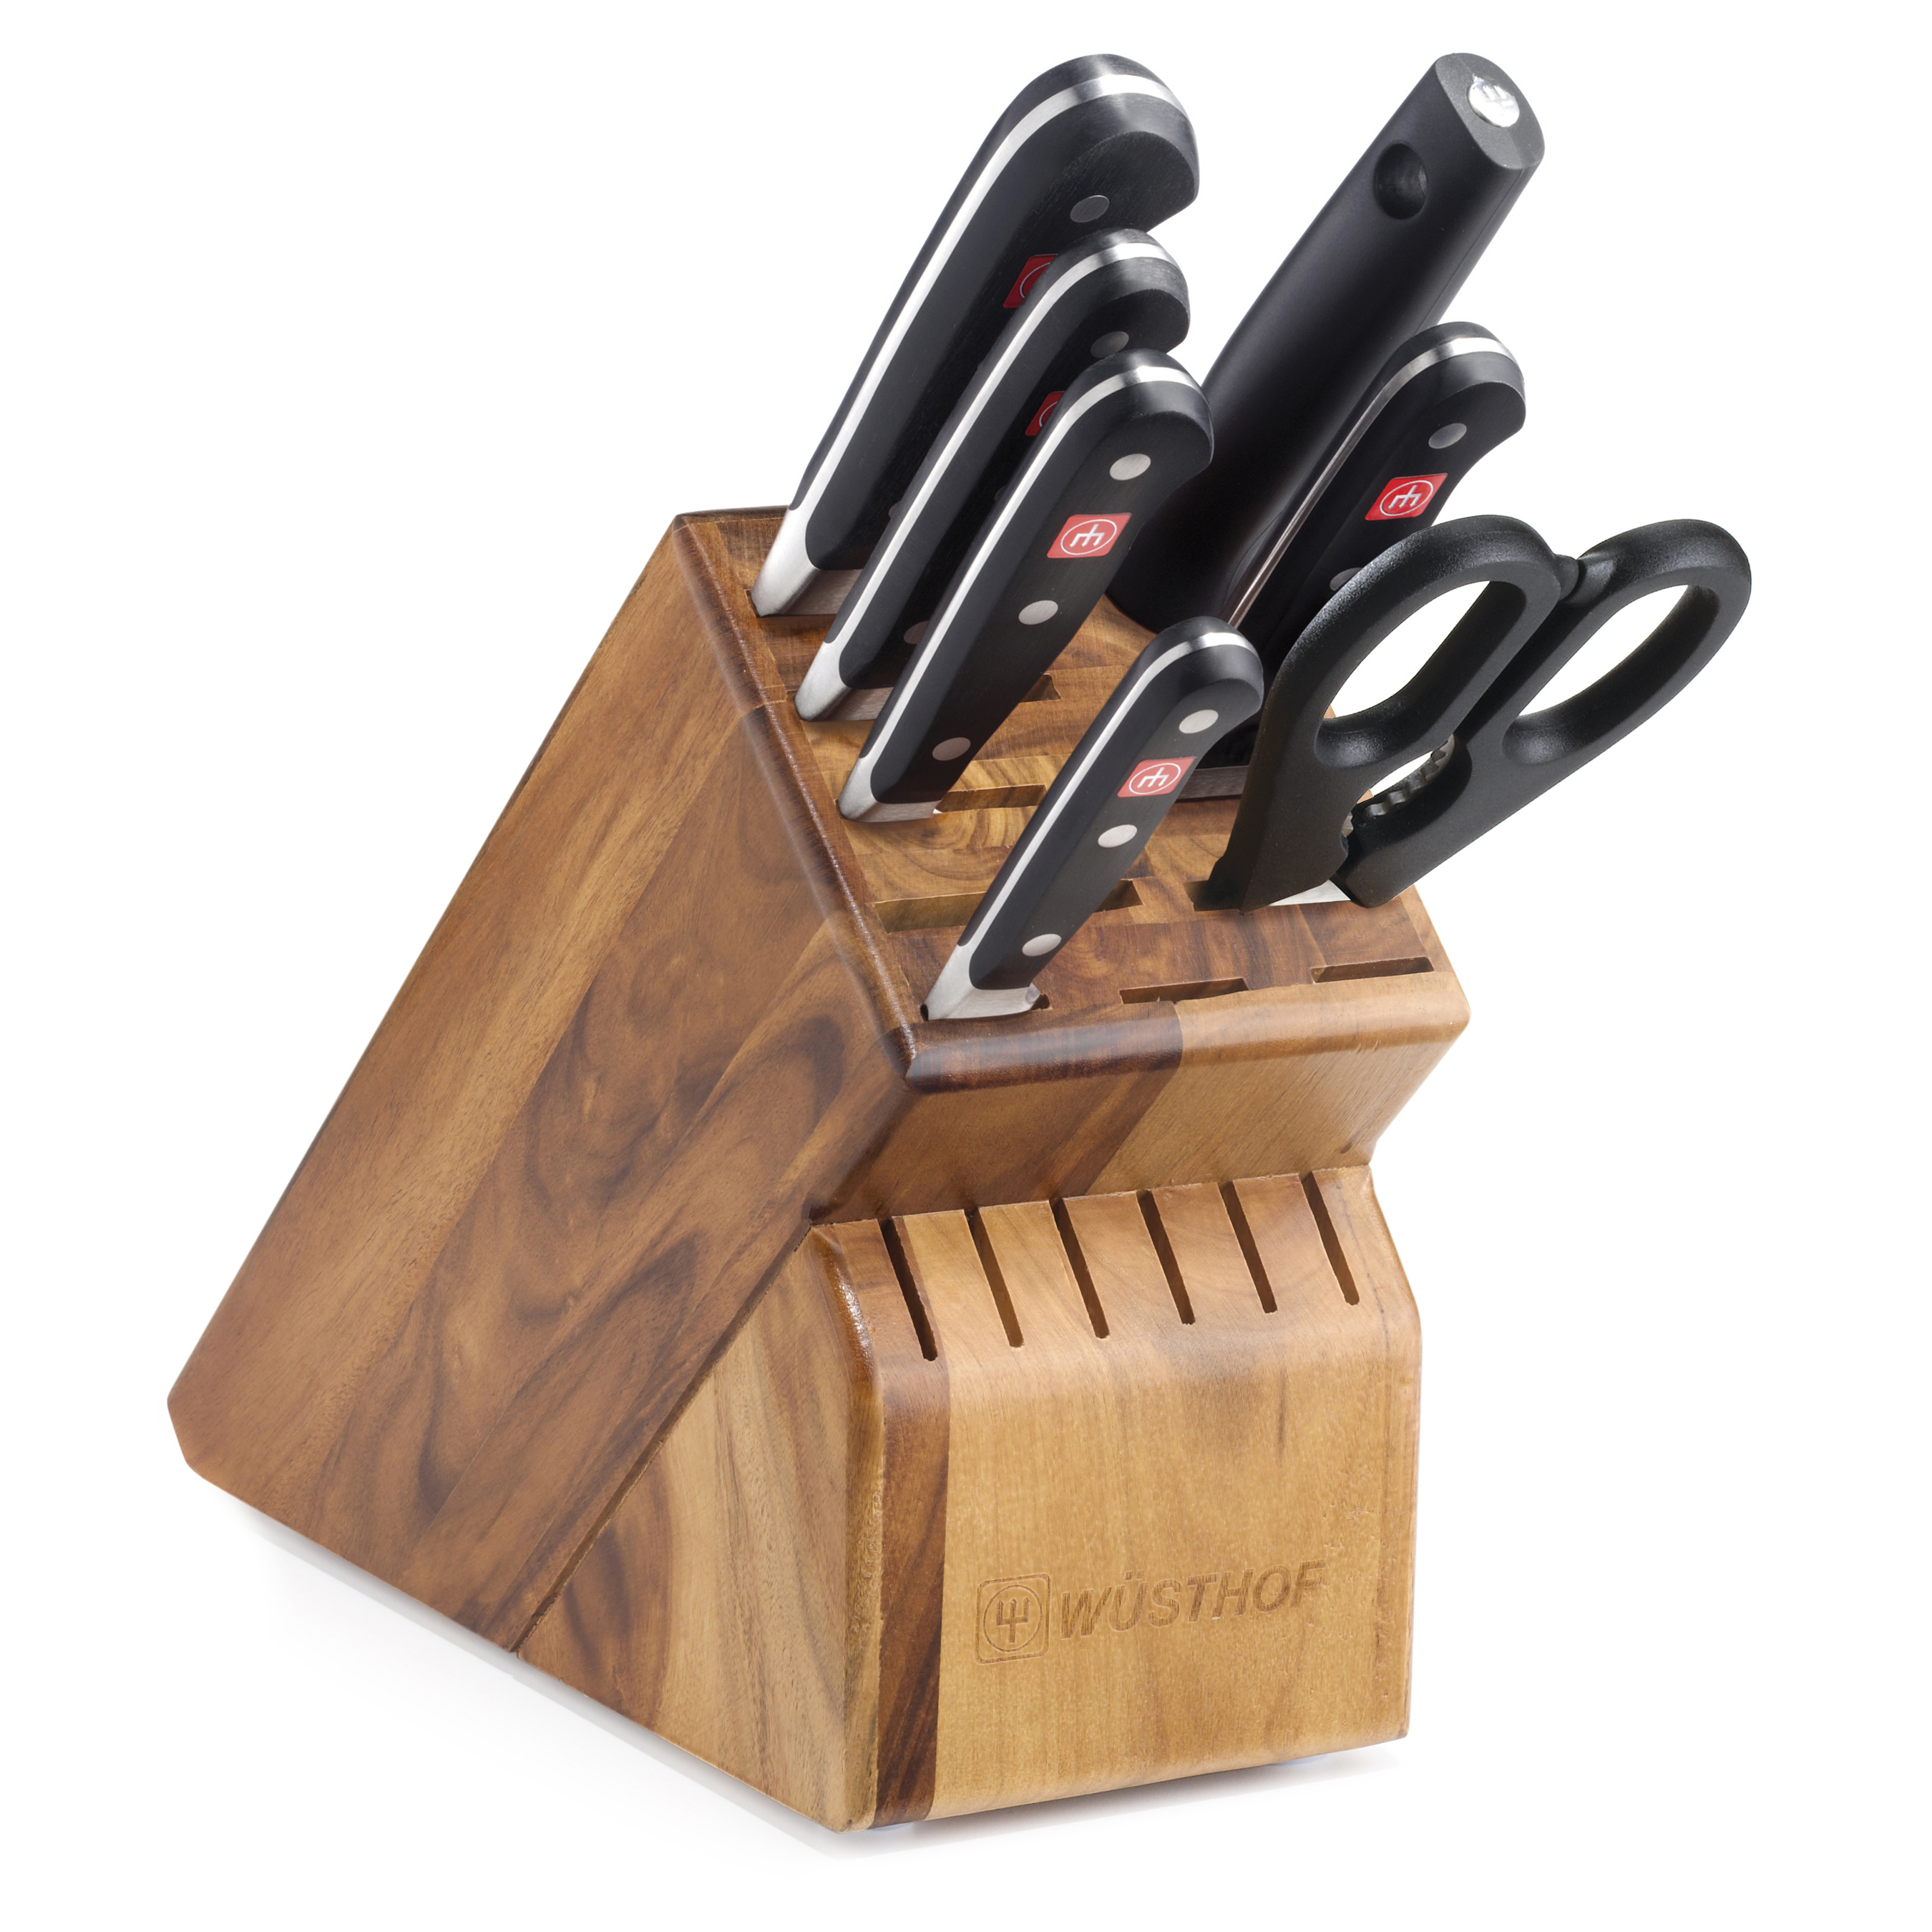 Wusthof Classic 8 Piece Deluxe High Carbon Steel Knife and Acacia Wood Block Set